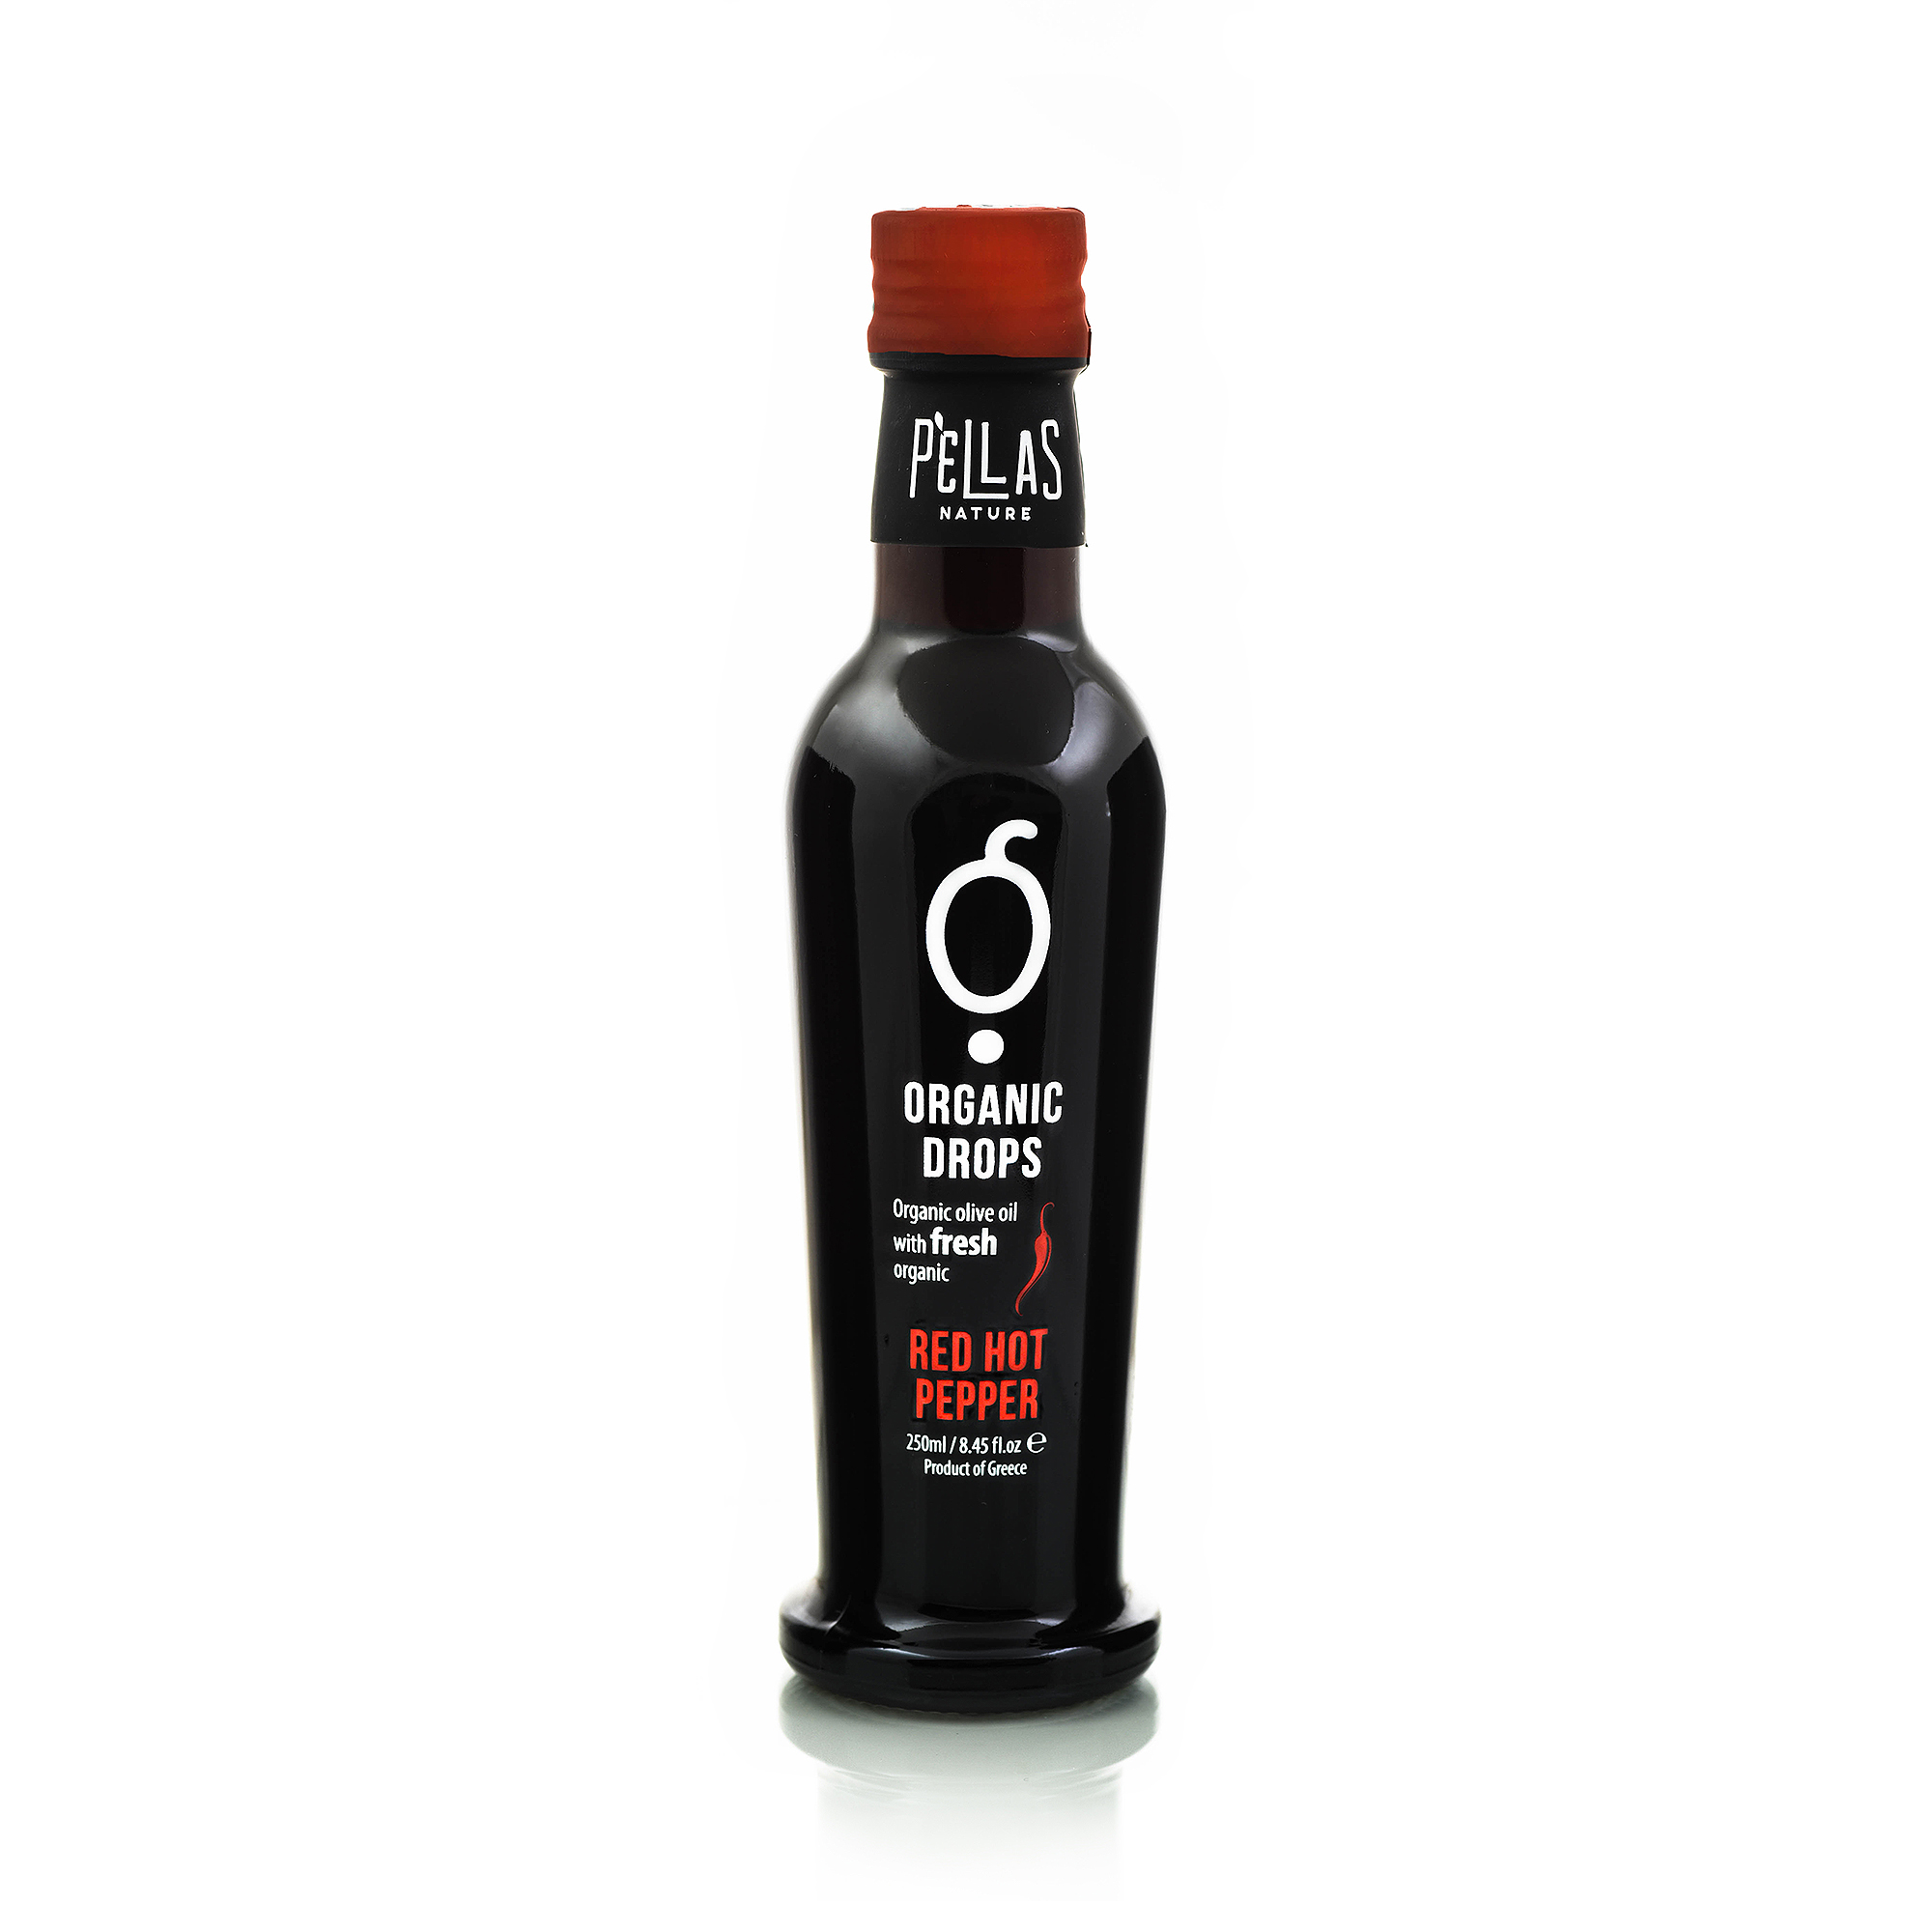 Organic Drops Red Hot Pepper Olive Oil 8.45 oz Bottle